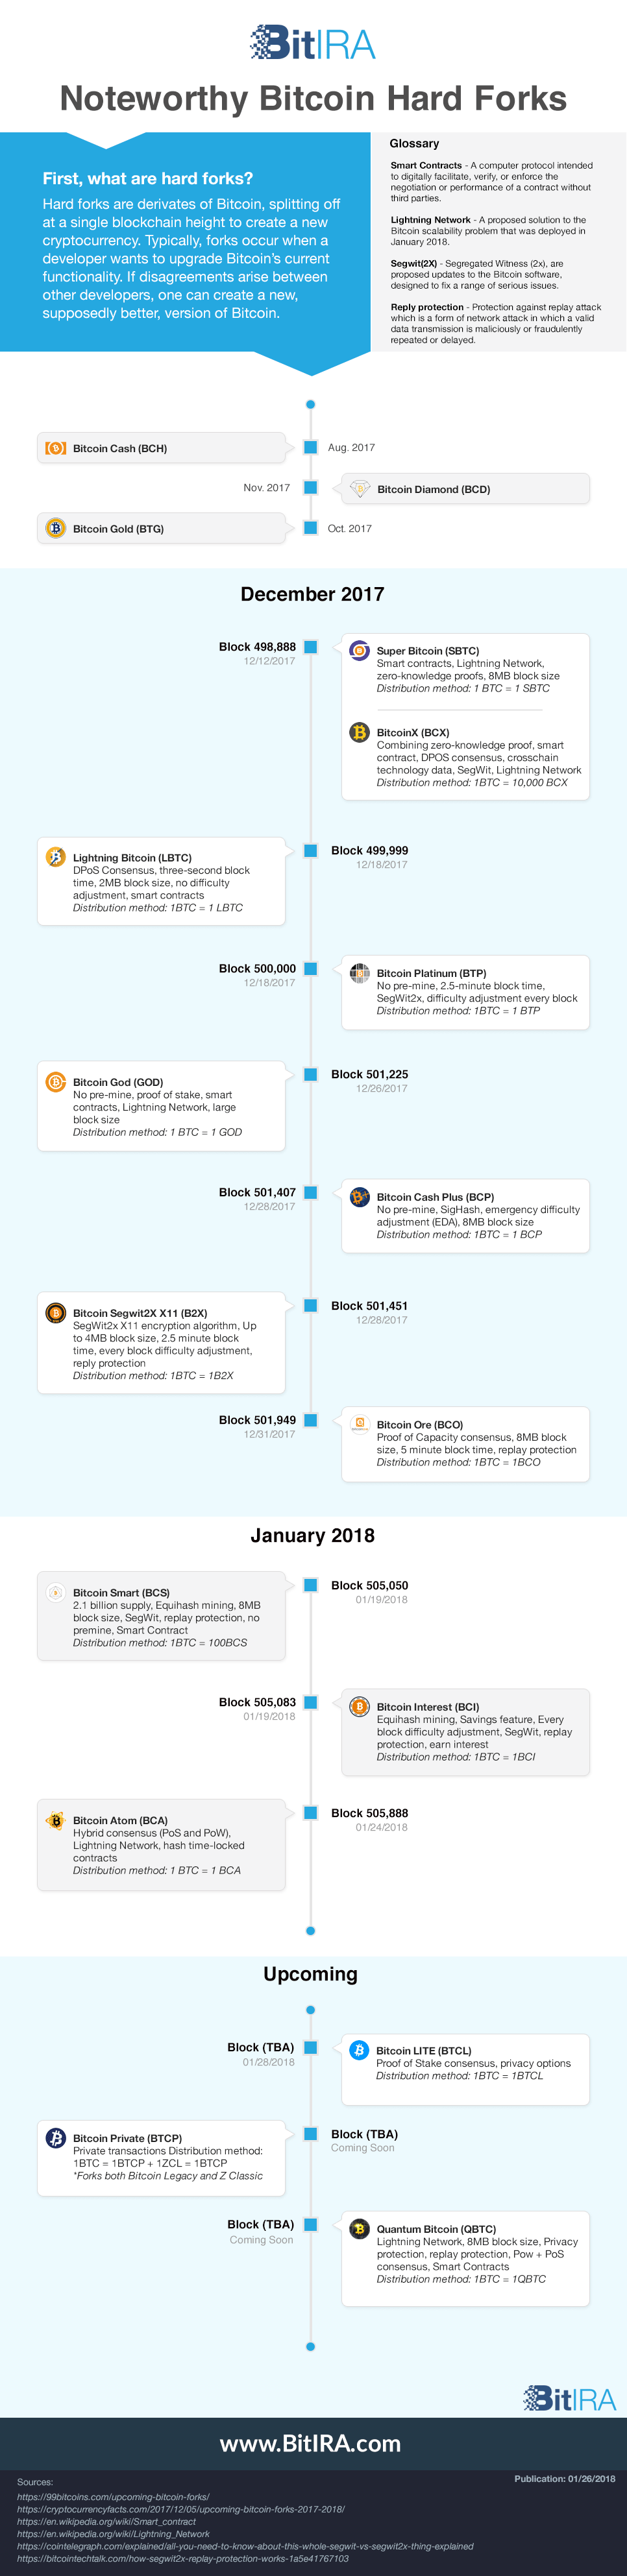 Bitcoin Hard Fork Timeline 2018 Upcoming